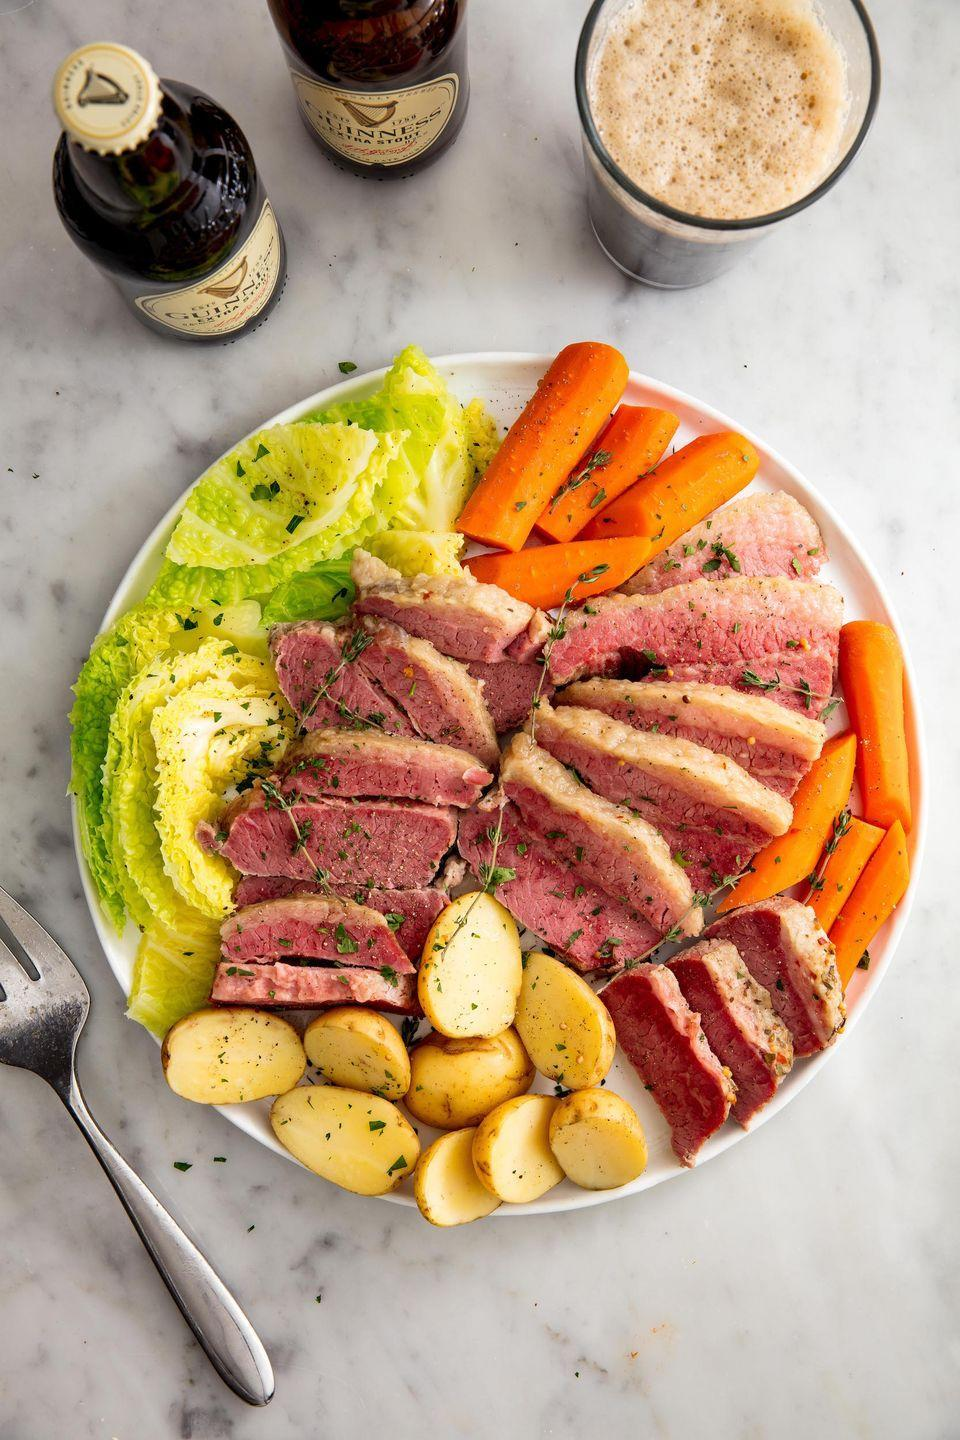 """<p>St. Patrick himself would approve.</p><p>Get the recipe from <a href=""""https://www.delish.com/cooking/recipe-ideas/recipes/a57965/slow-cooker-corned-beef-and-cabbage-recipe/"""" rel=""""nofollow noopener"""" target=""""_blank"""" data-ylk=""""slk:Delish"""" class=""""link rapid-noclick-resp"""">Delish</a>. </p>"""